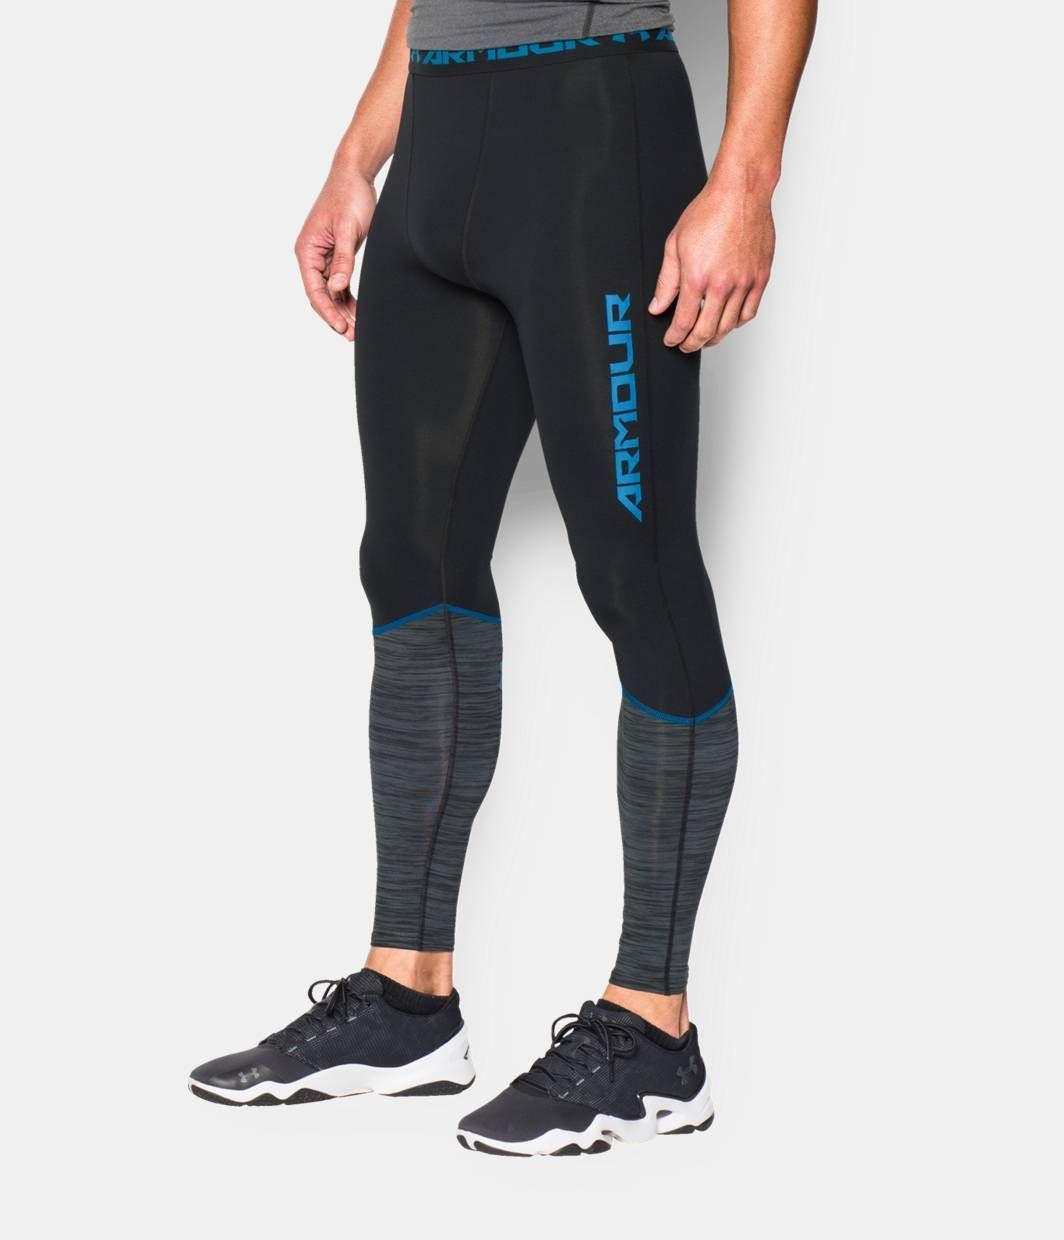 84276ab43d Shop Under Armour for Men's UA HeatGear® Armour Twist Flight Compression  Leggings in our Mens Bottoms department. Free shipping is available in US.